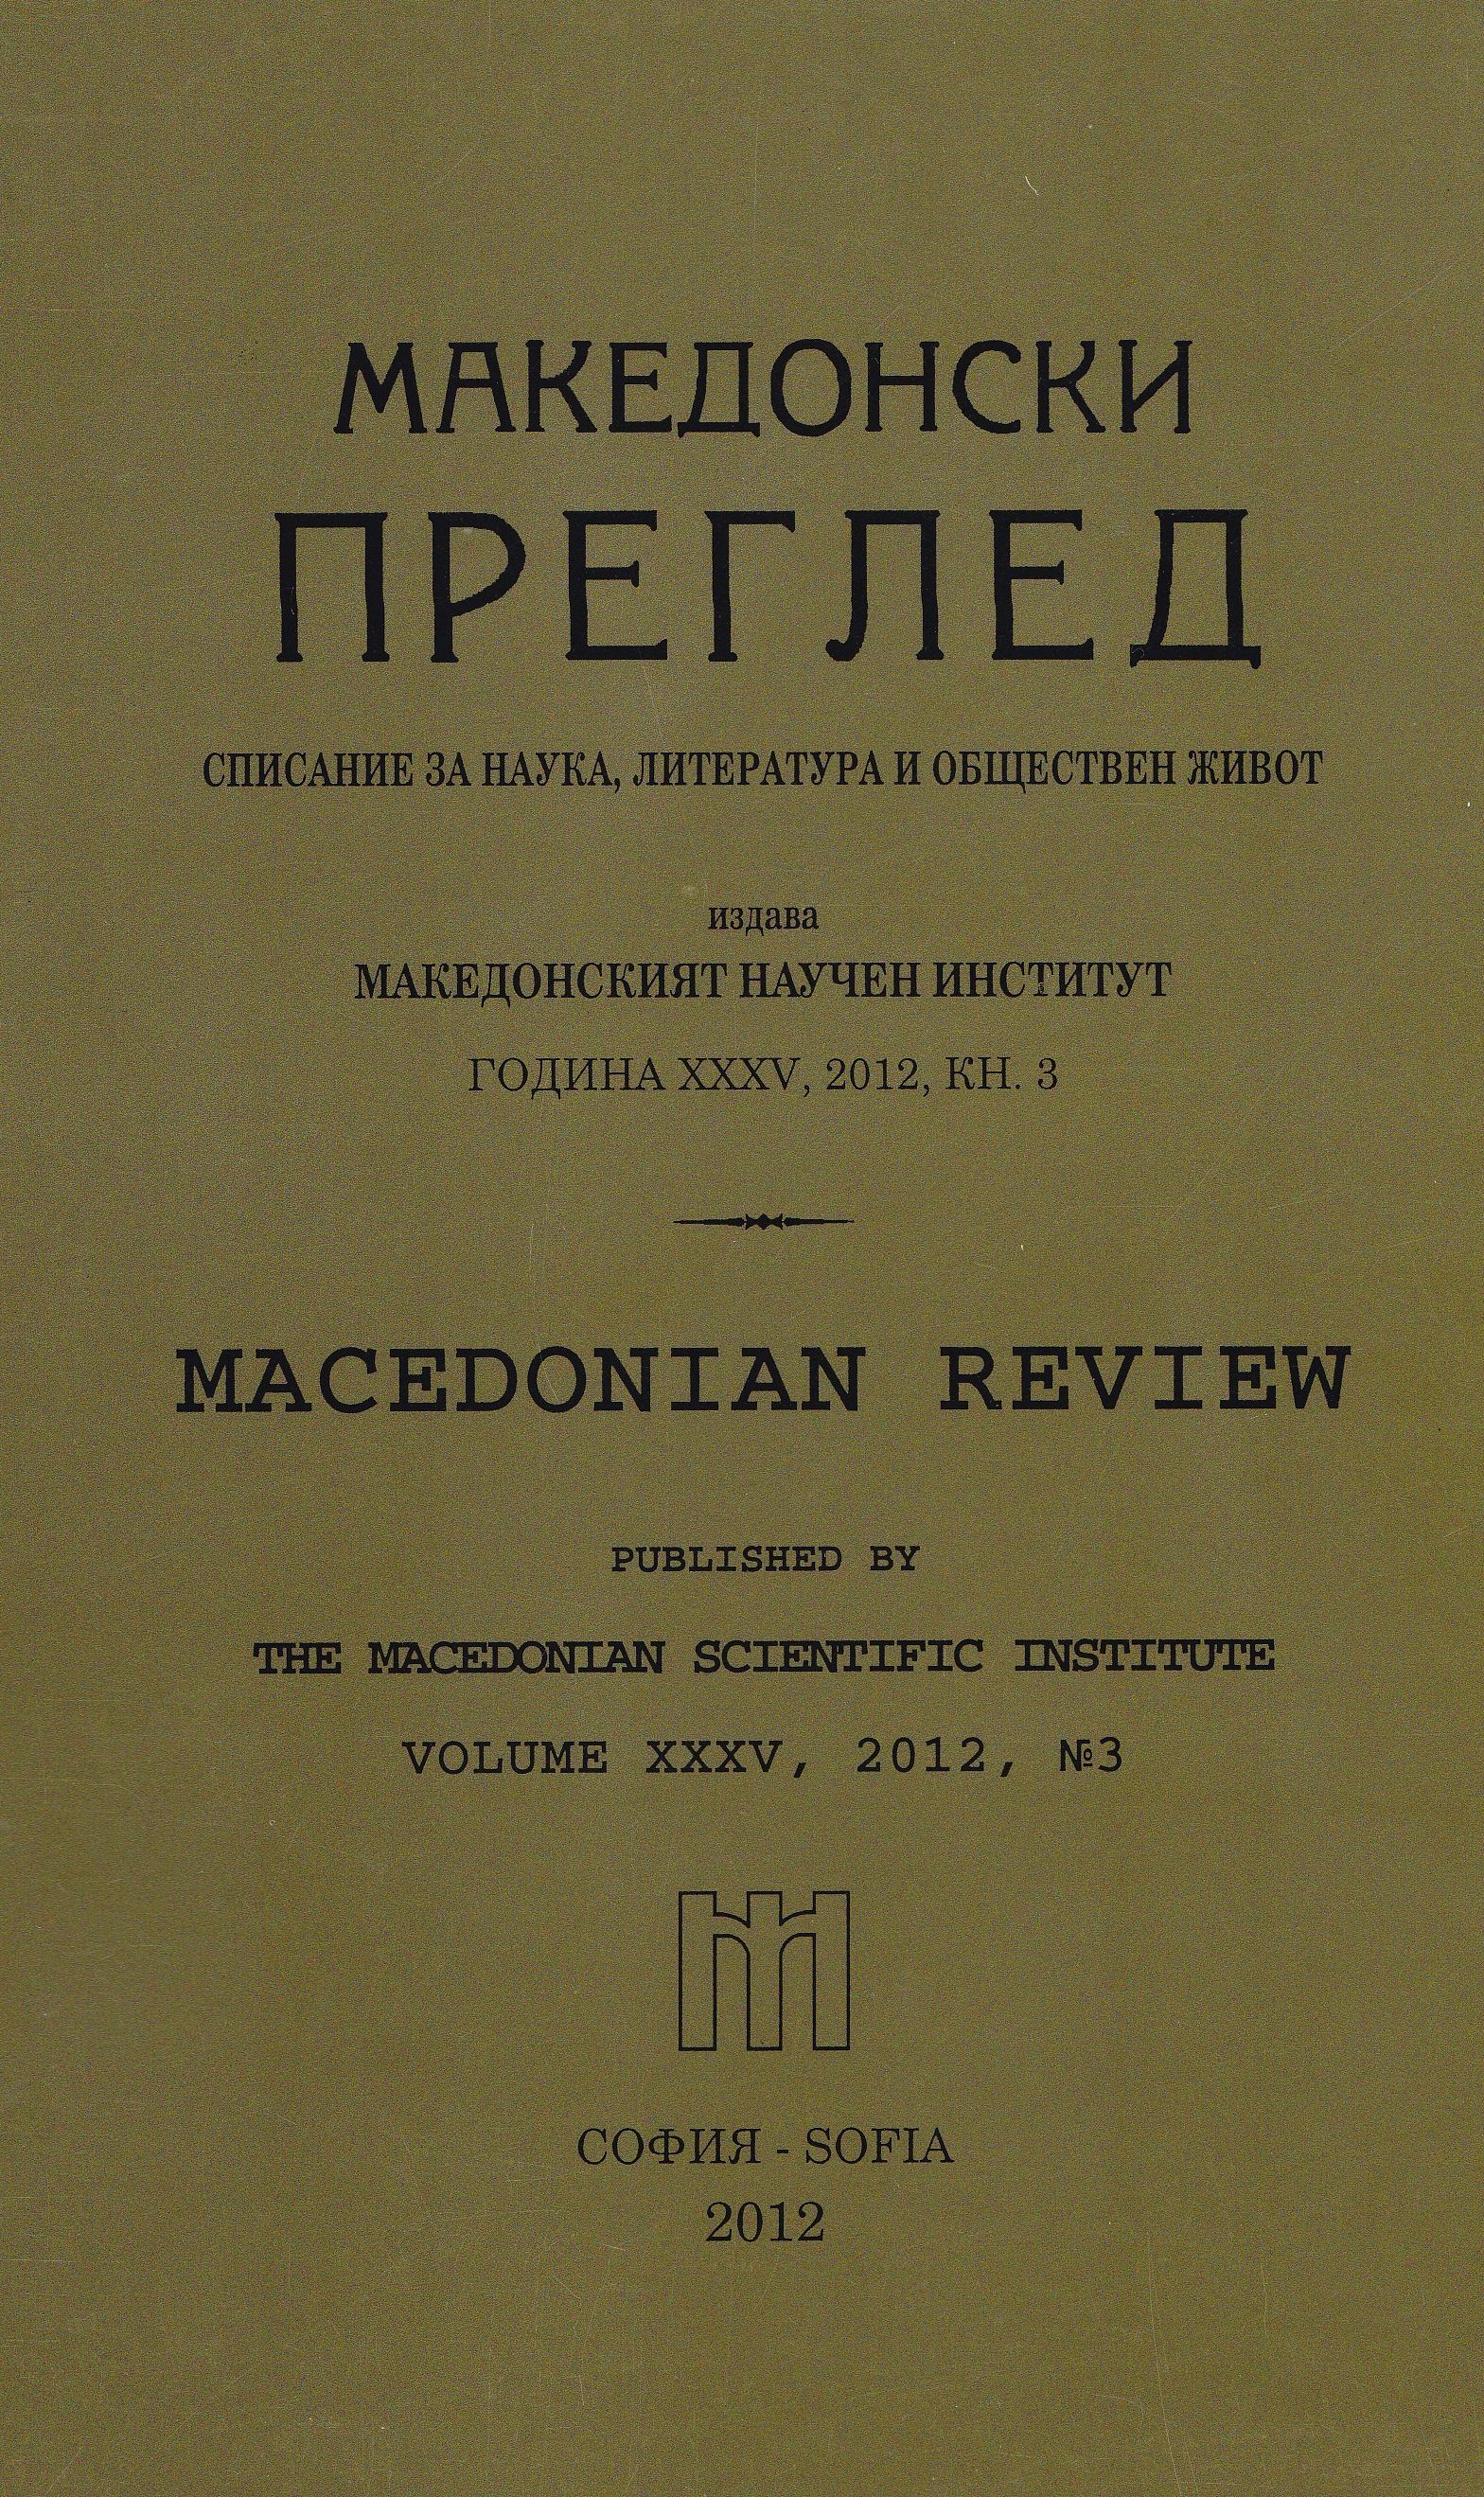 Anniversary revelation of Associate Professor Stoyan Germanov, PhD (On the occasion of its 75th anniversary) Cover Image